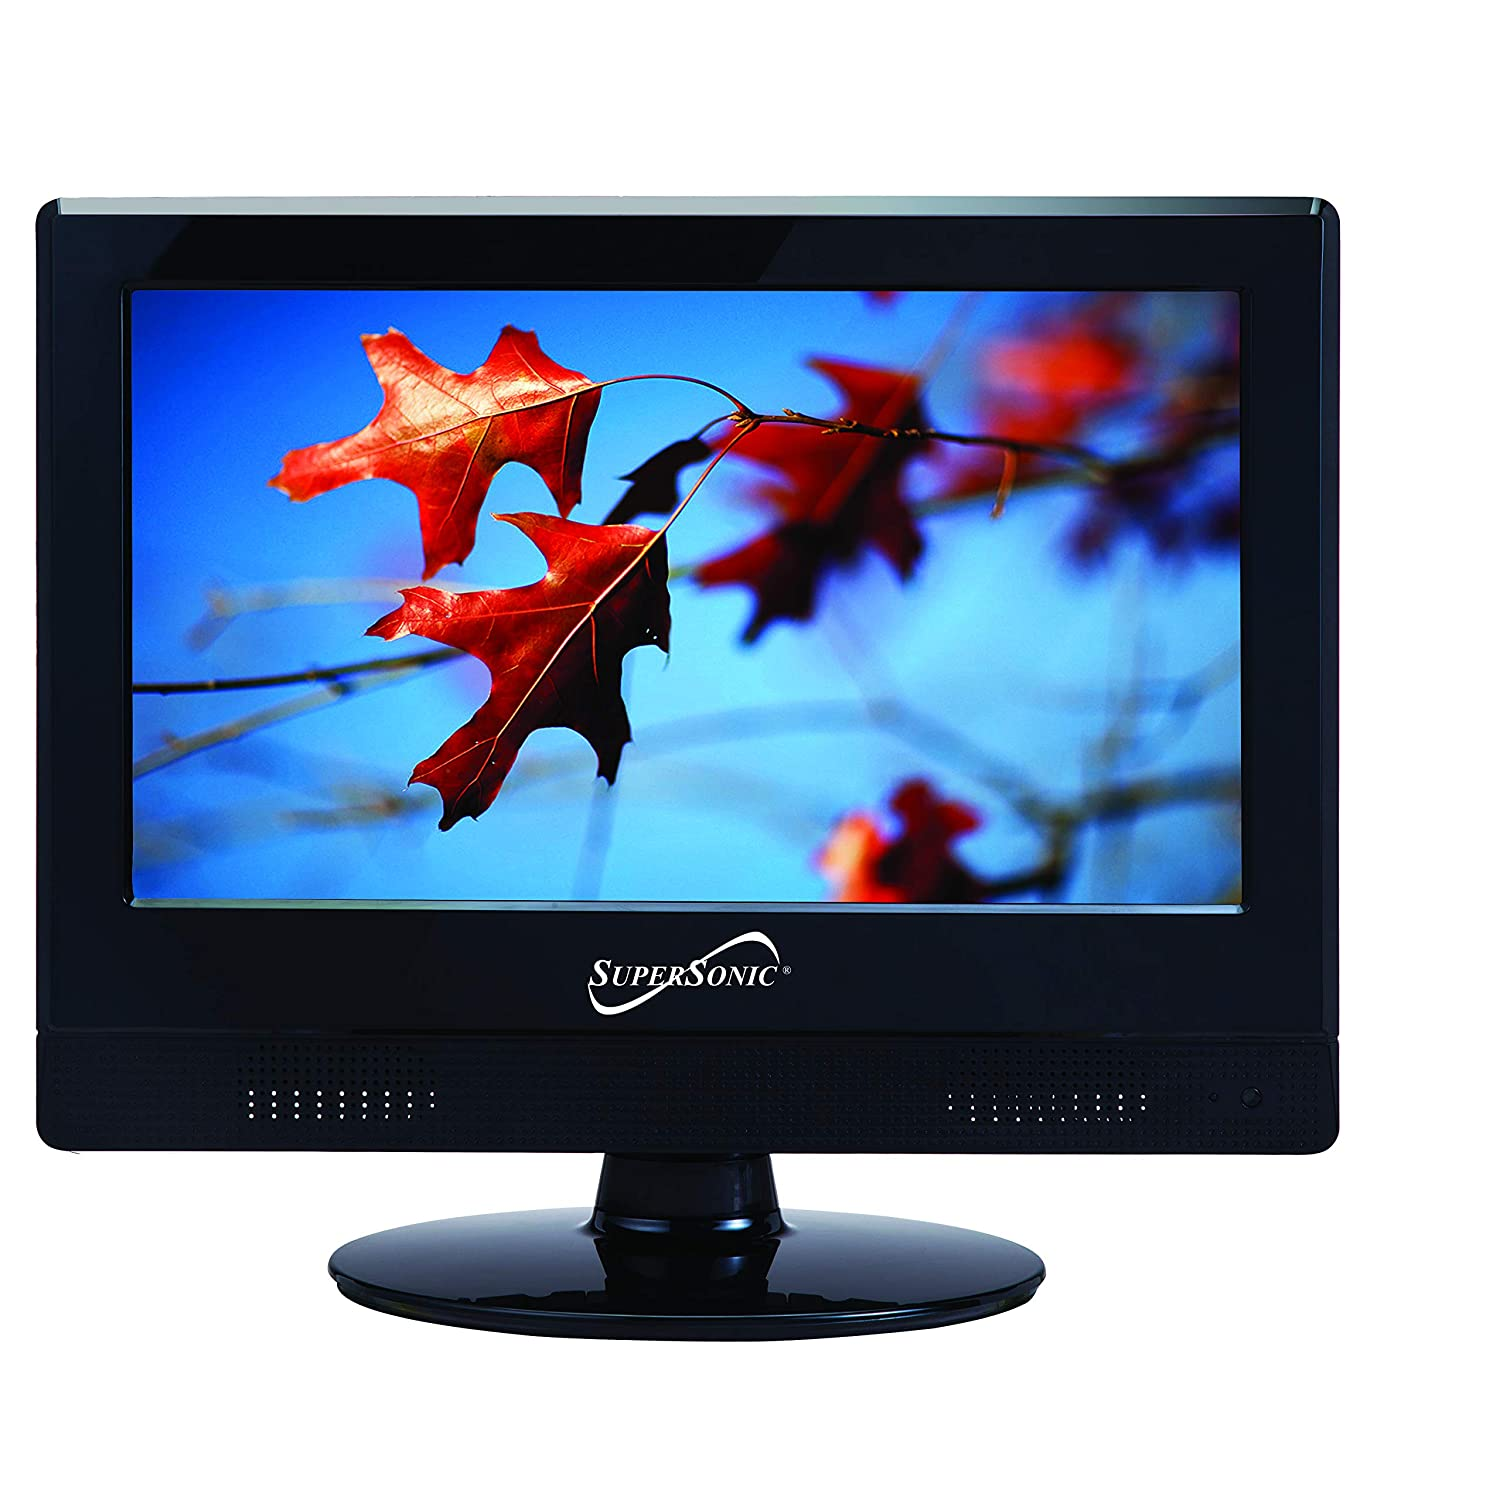 Supersonic SC-1311 13 3-Inch 1080p LED Widescreen HDTV with HDMI Input  (AC/DC Compatible)